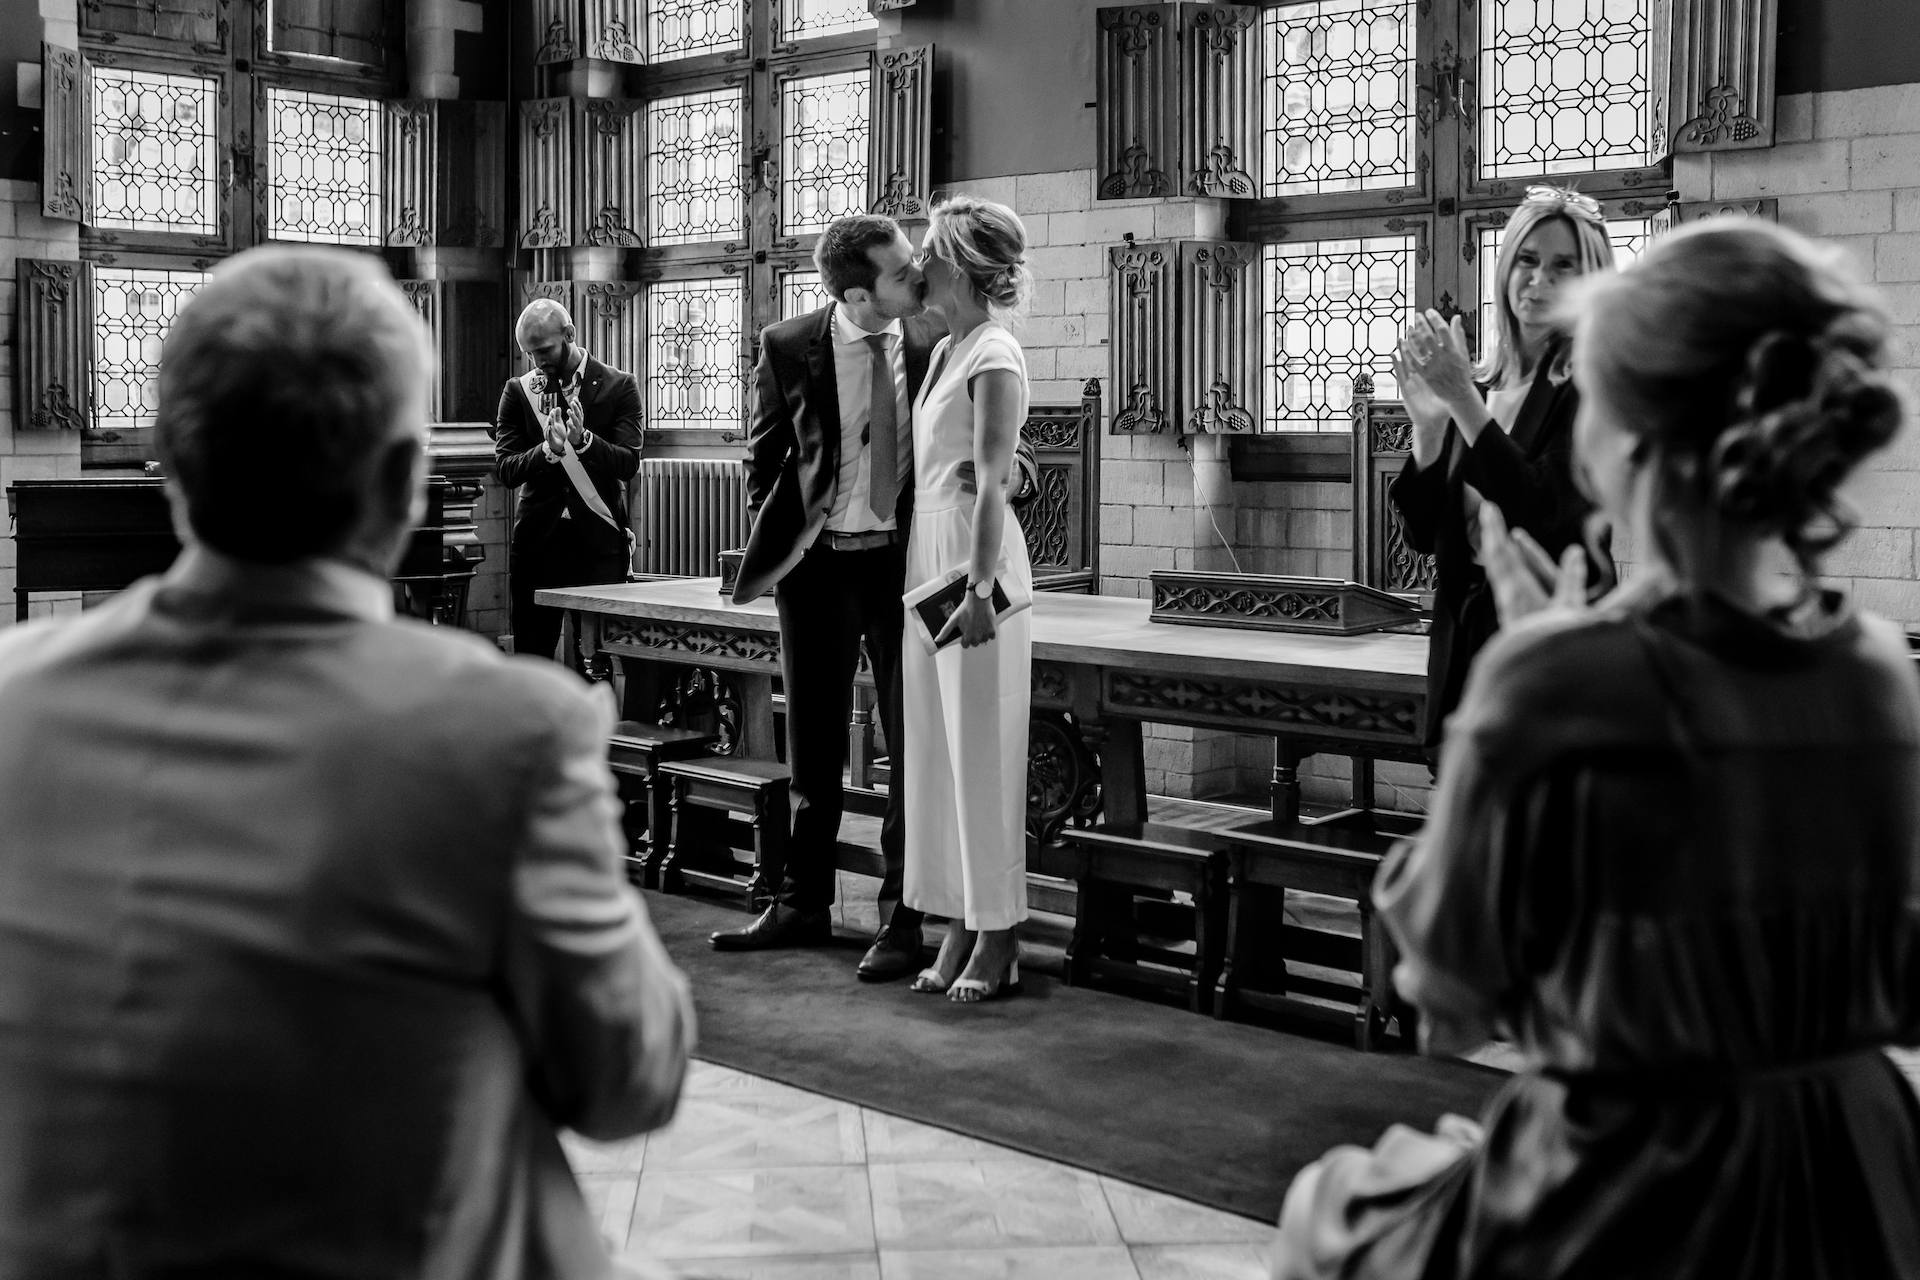 COVID-19 Belgium Town Hall Civil Ceremony Elopement Image | At the end of the ceremony, the couple finally kisses